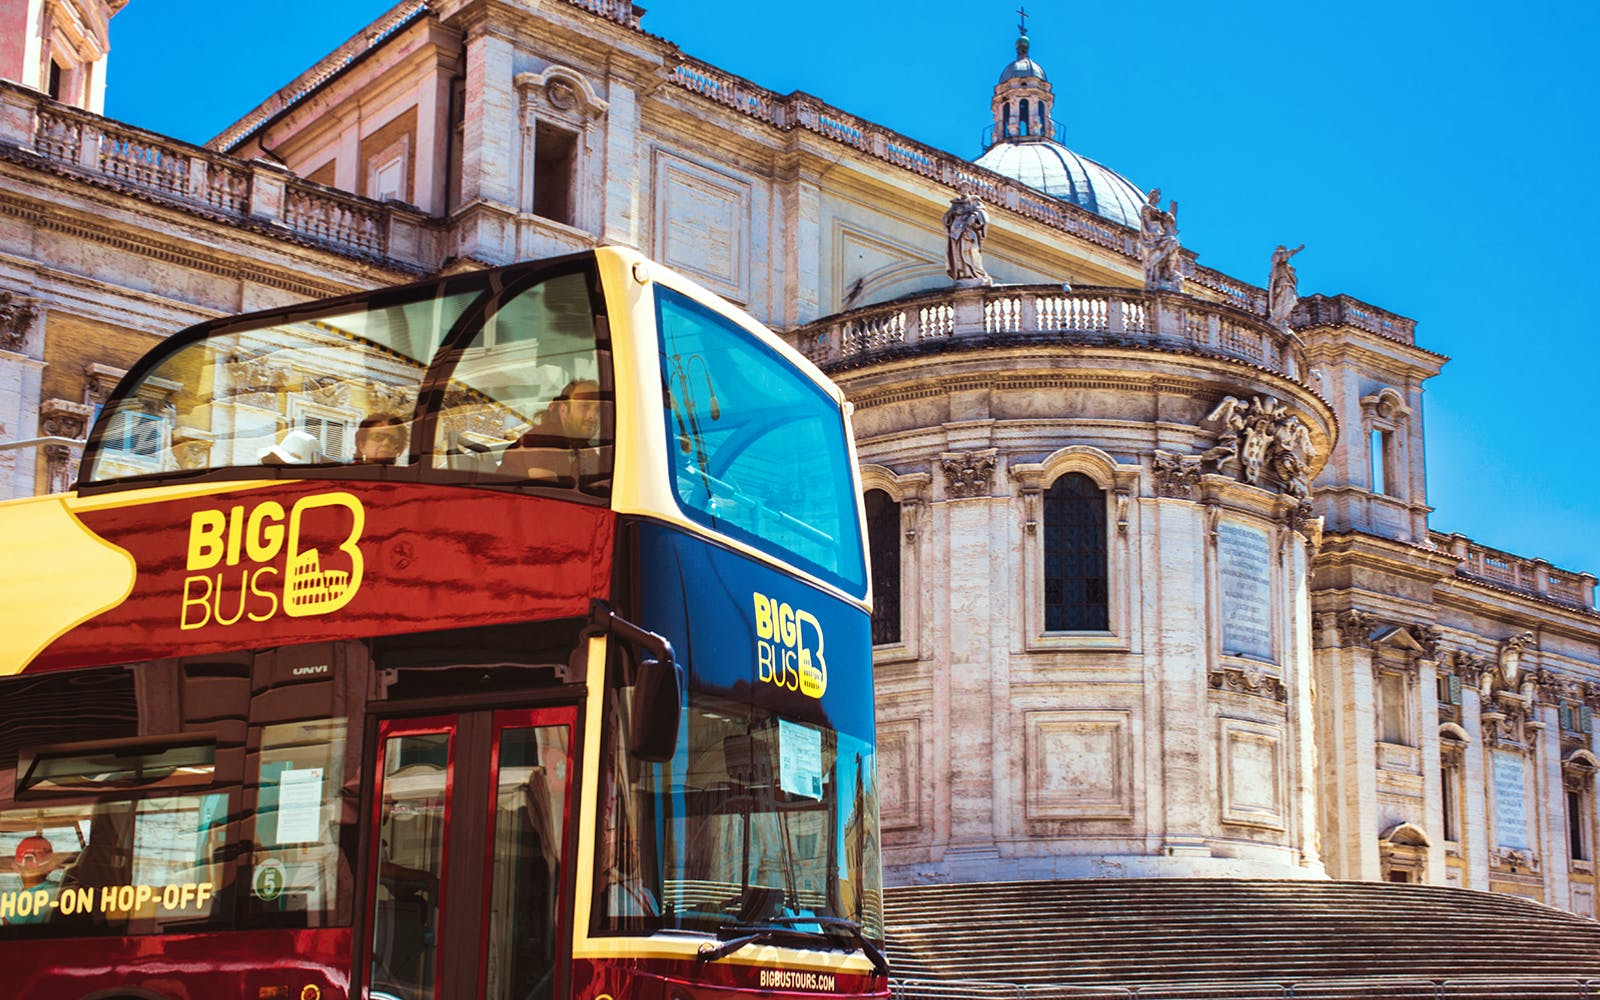 big bus: hop-on hop-off bus tour with free walking tours-1